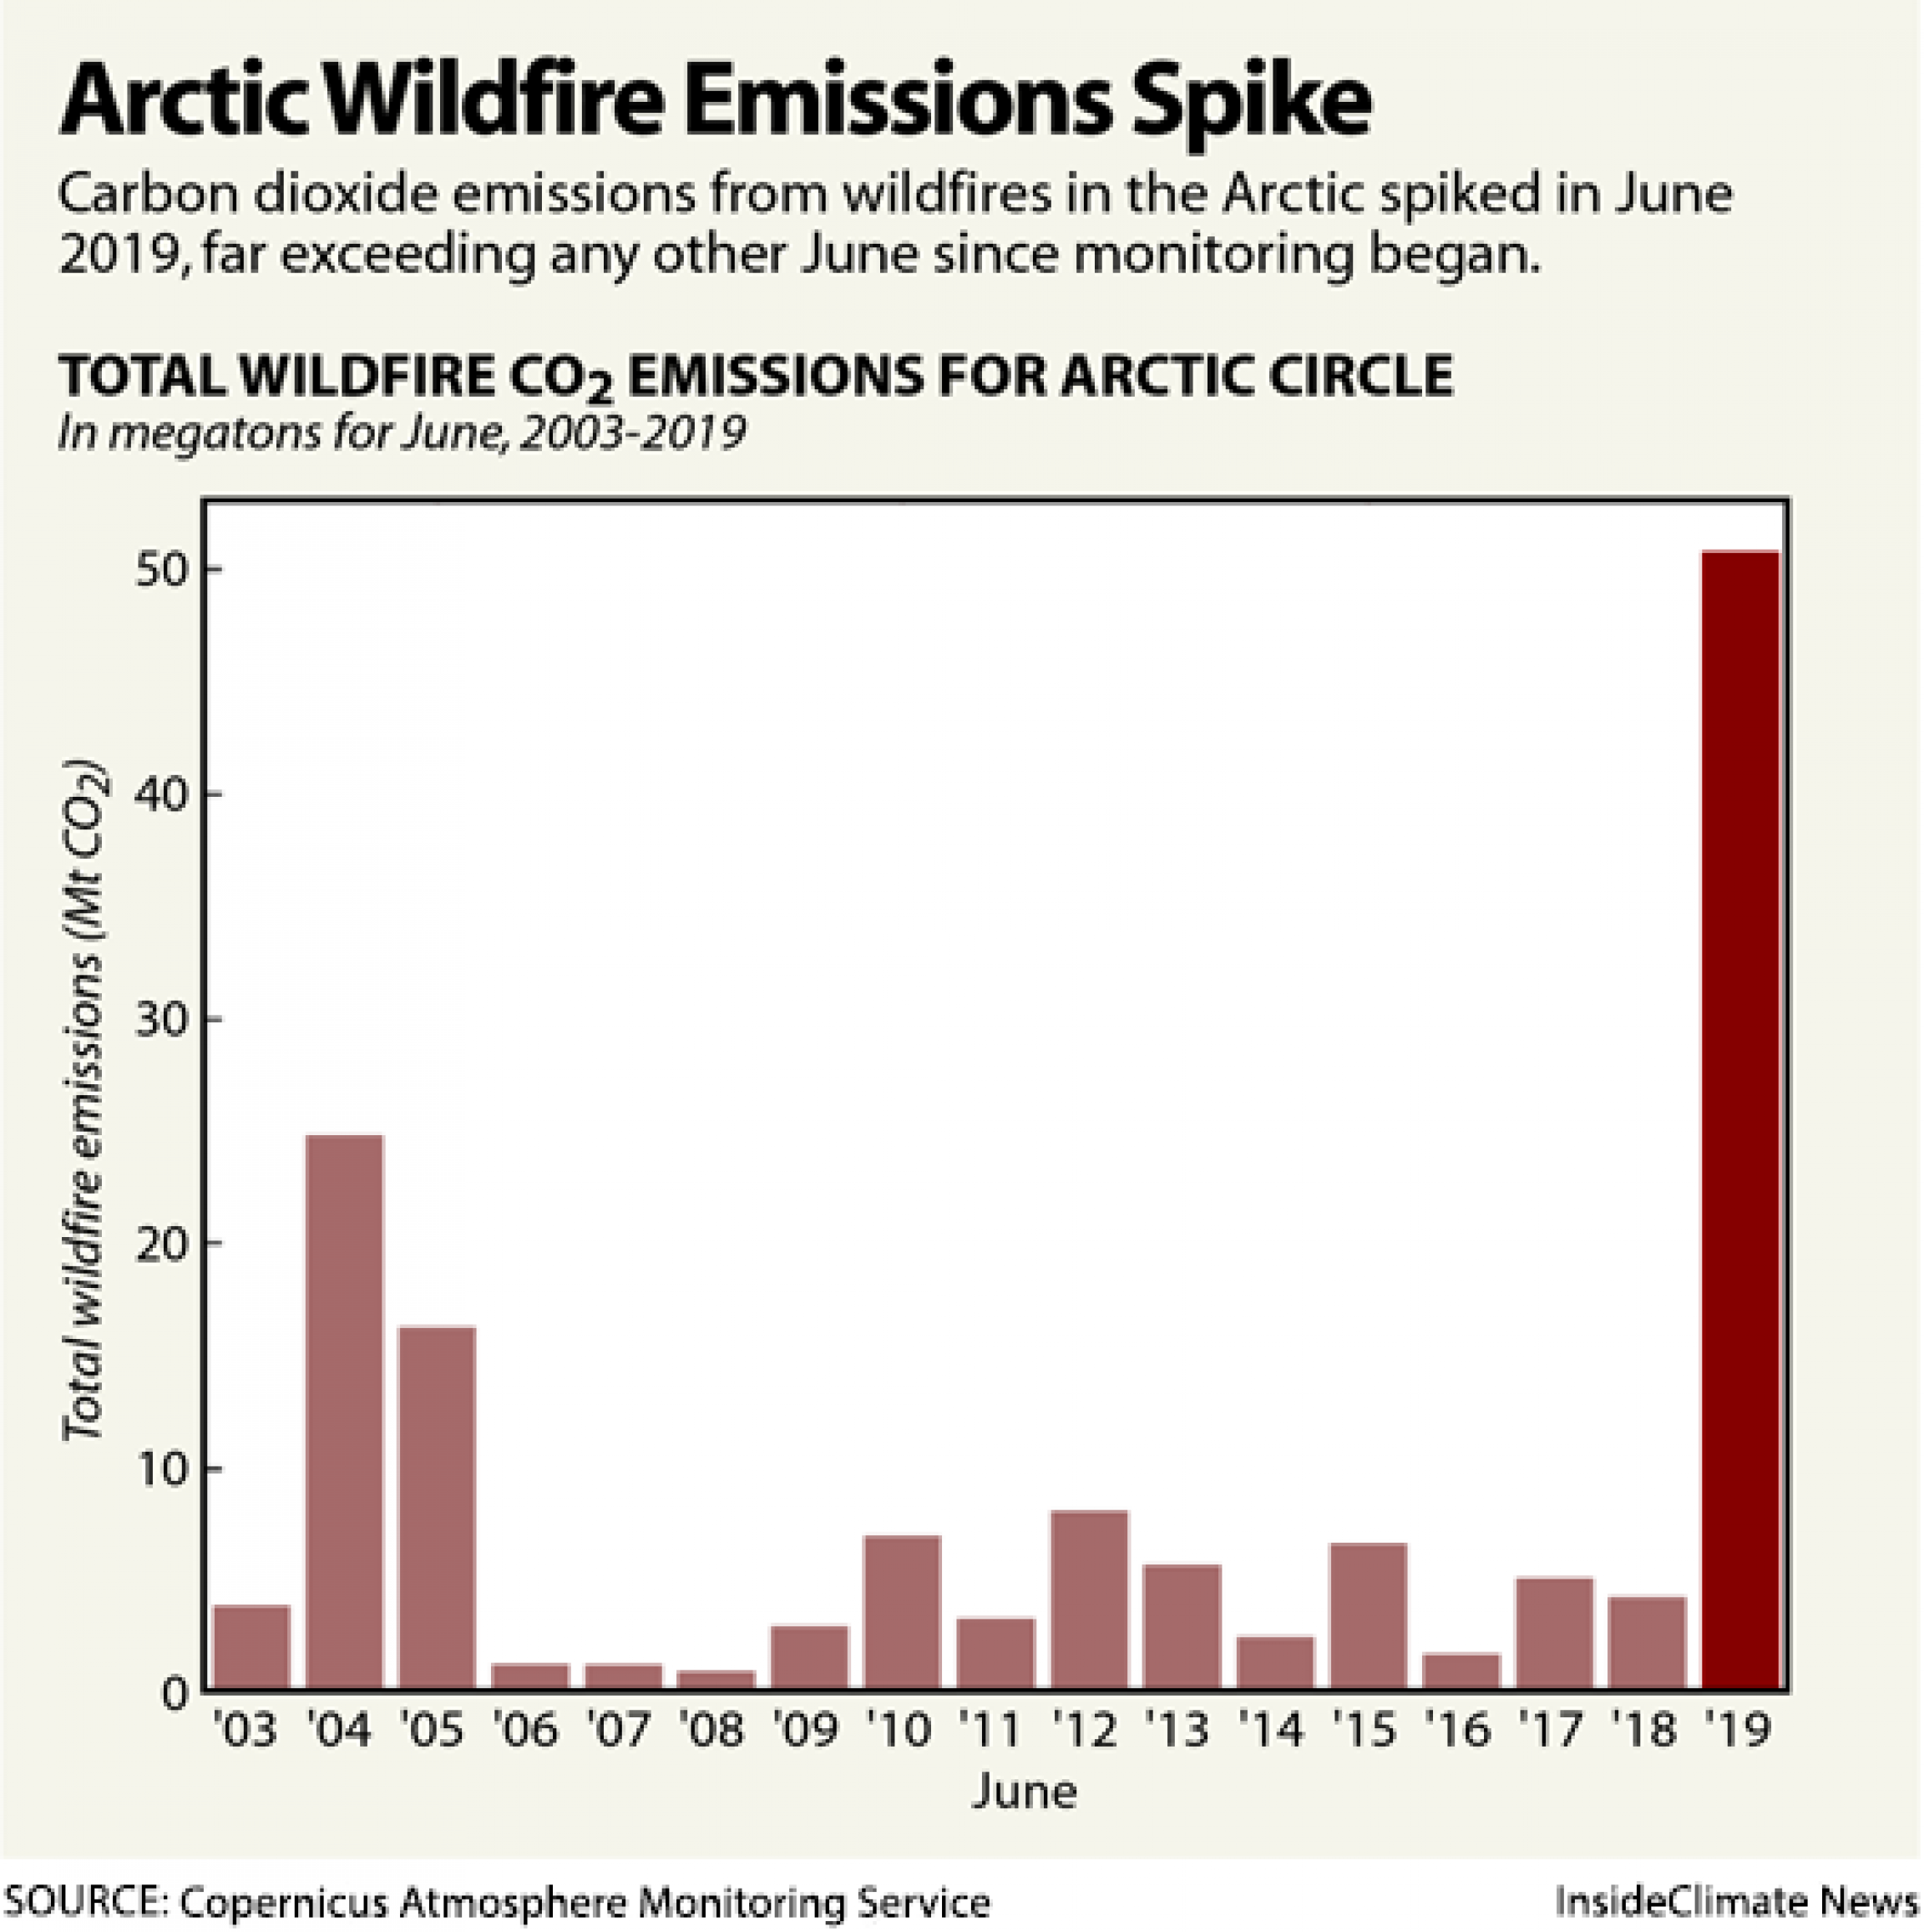 A chart showing the CO2 emissions from Arctic wildfires.